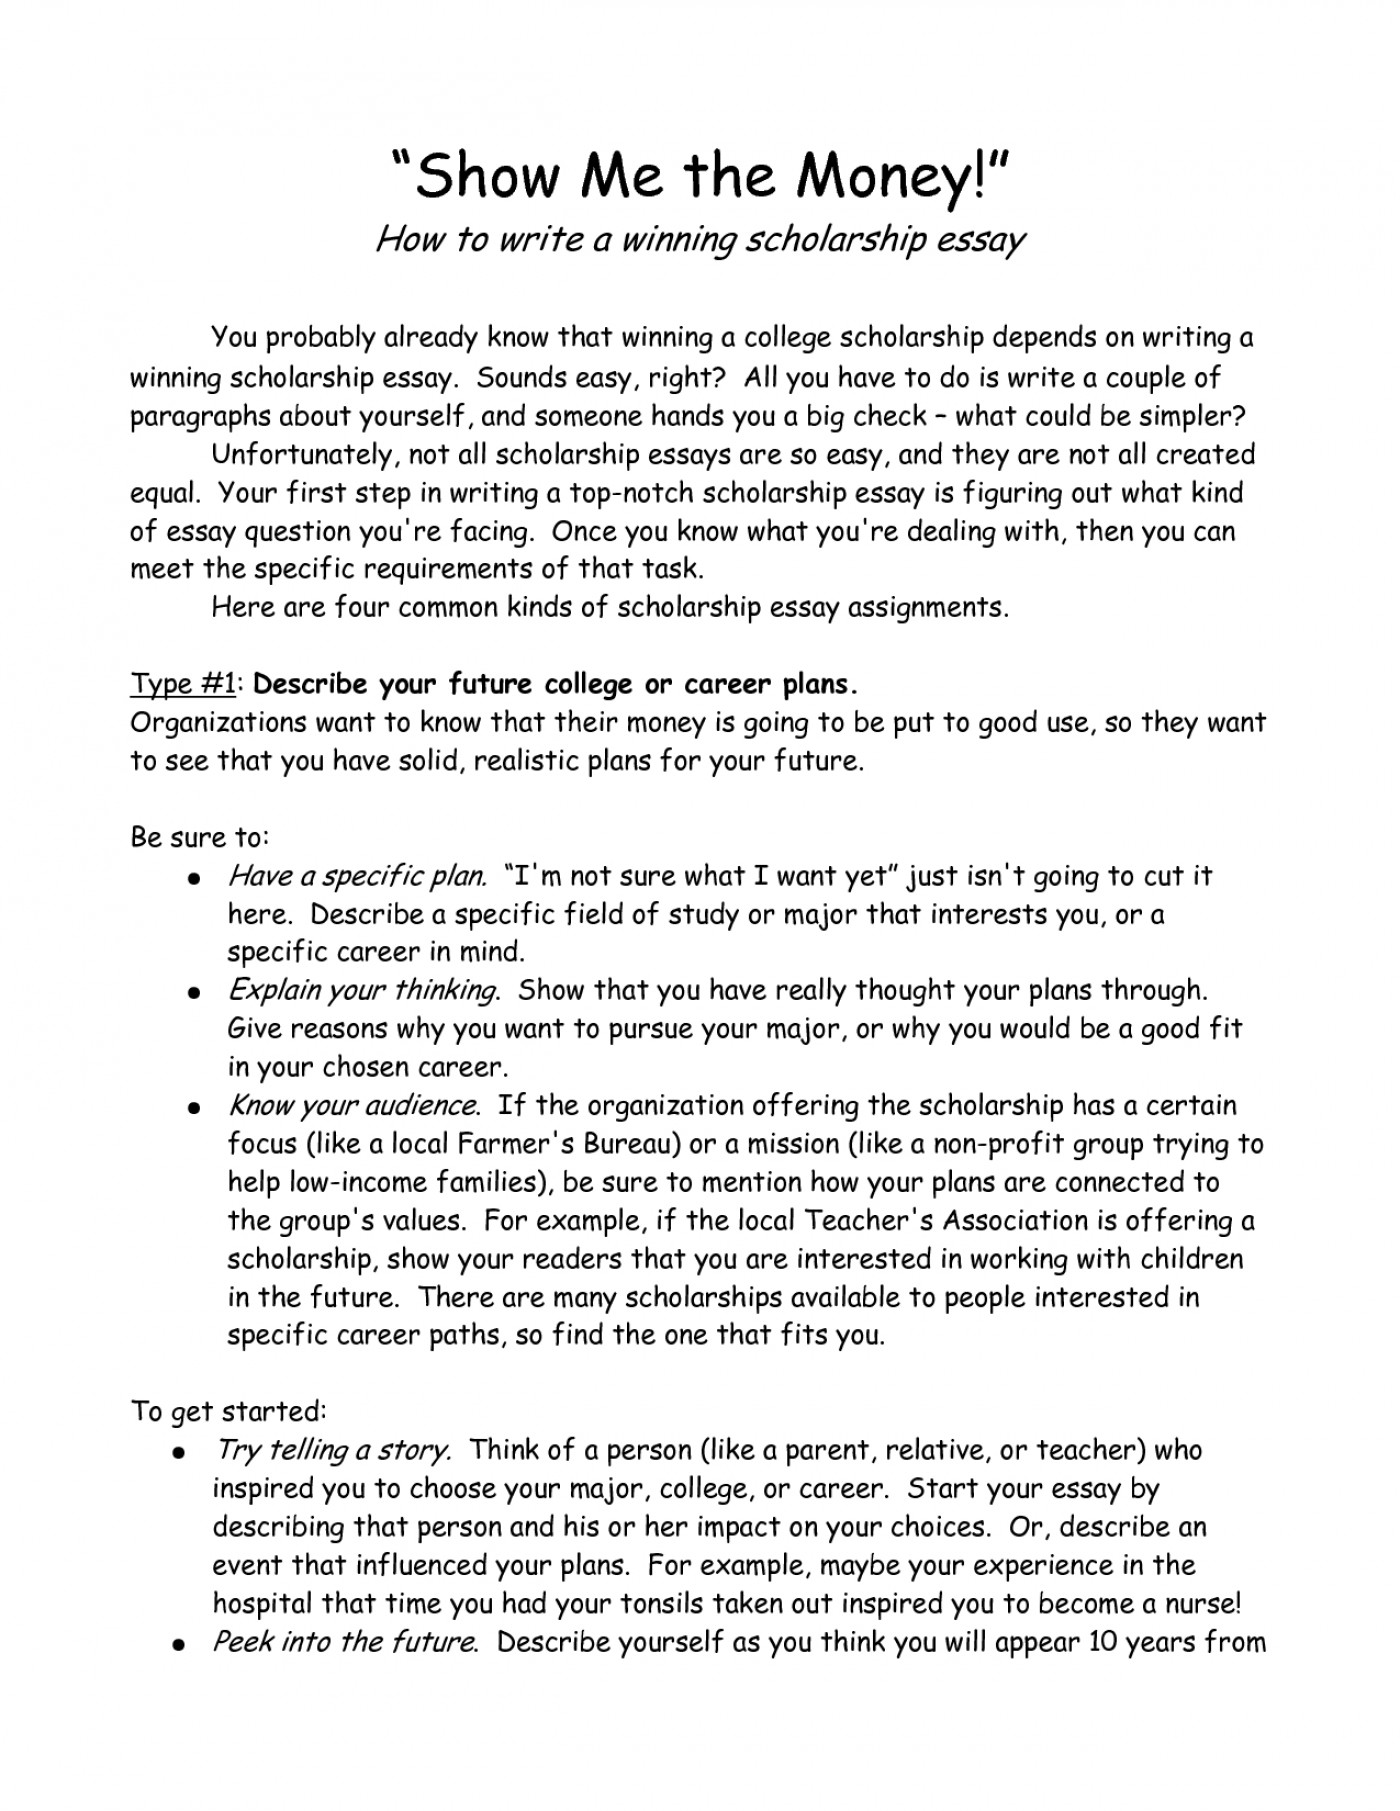 003 What To Write For Scholarship Essay Greats Targer Golden Dragon Co College Format Awesome A Examples How About Financial Need Introduction 1400